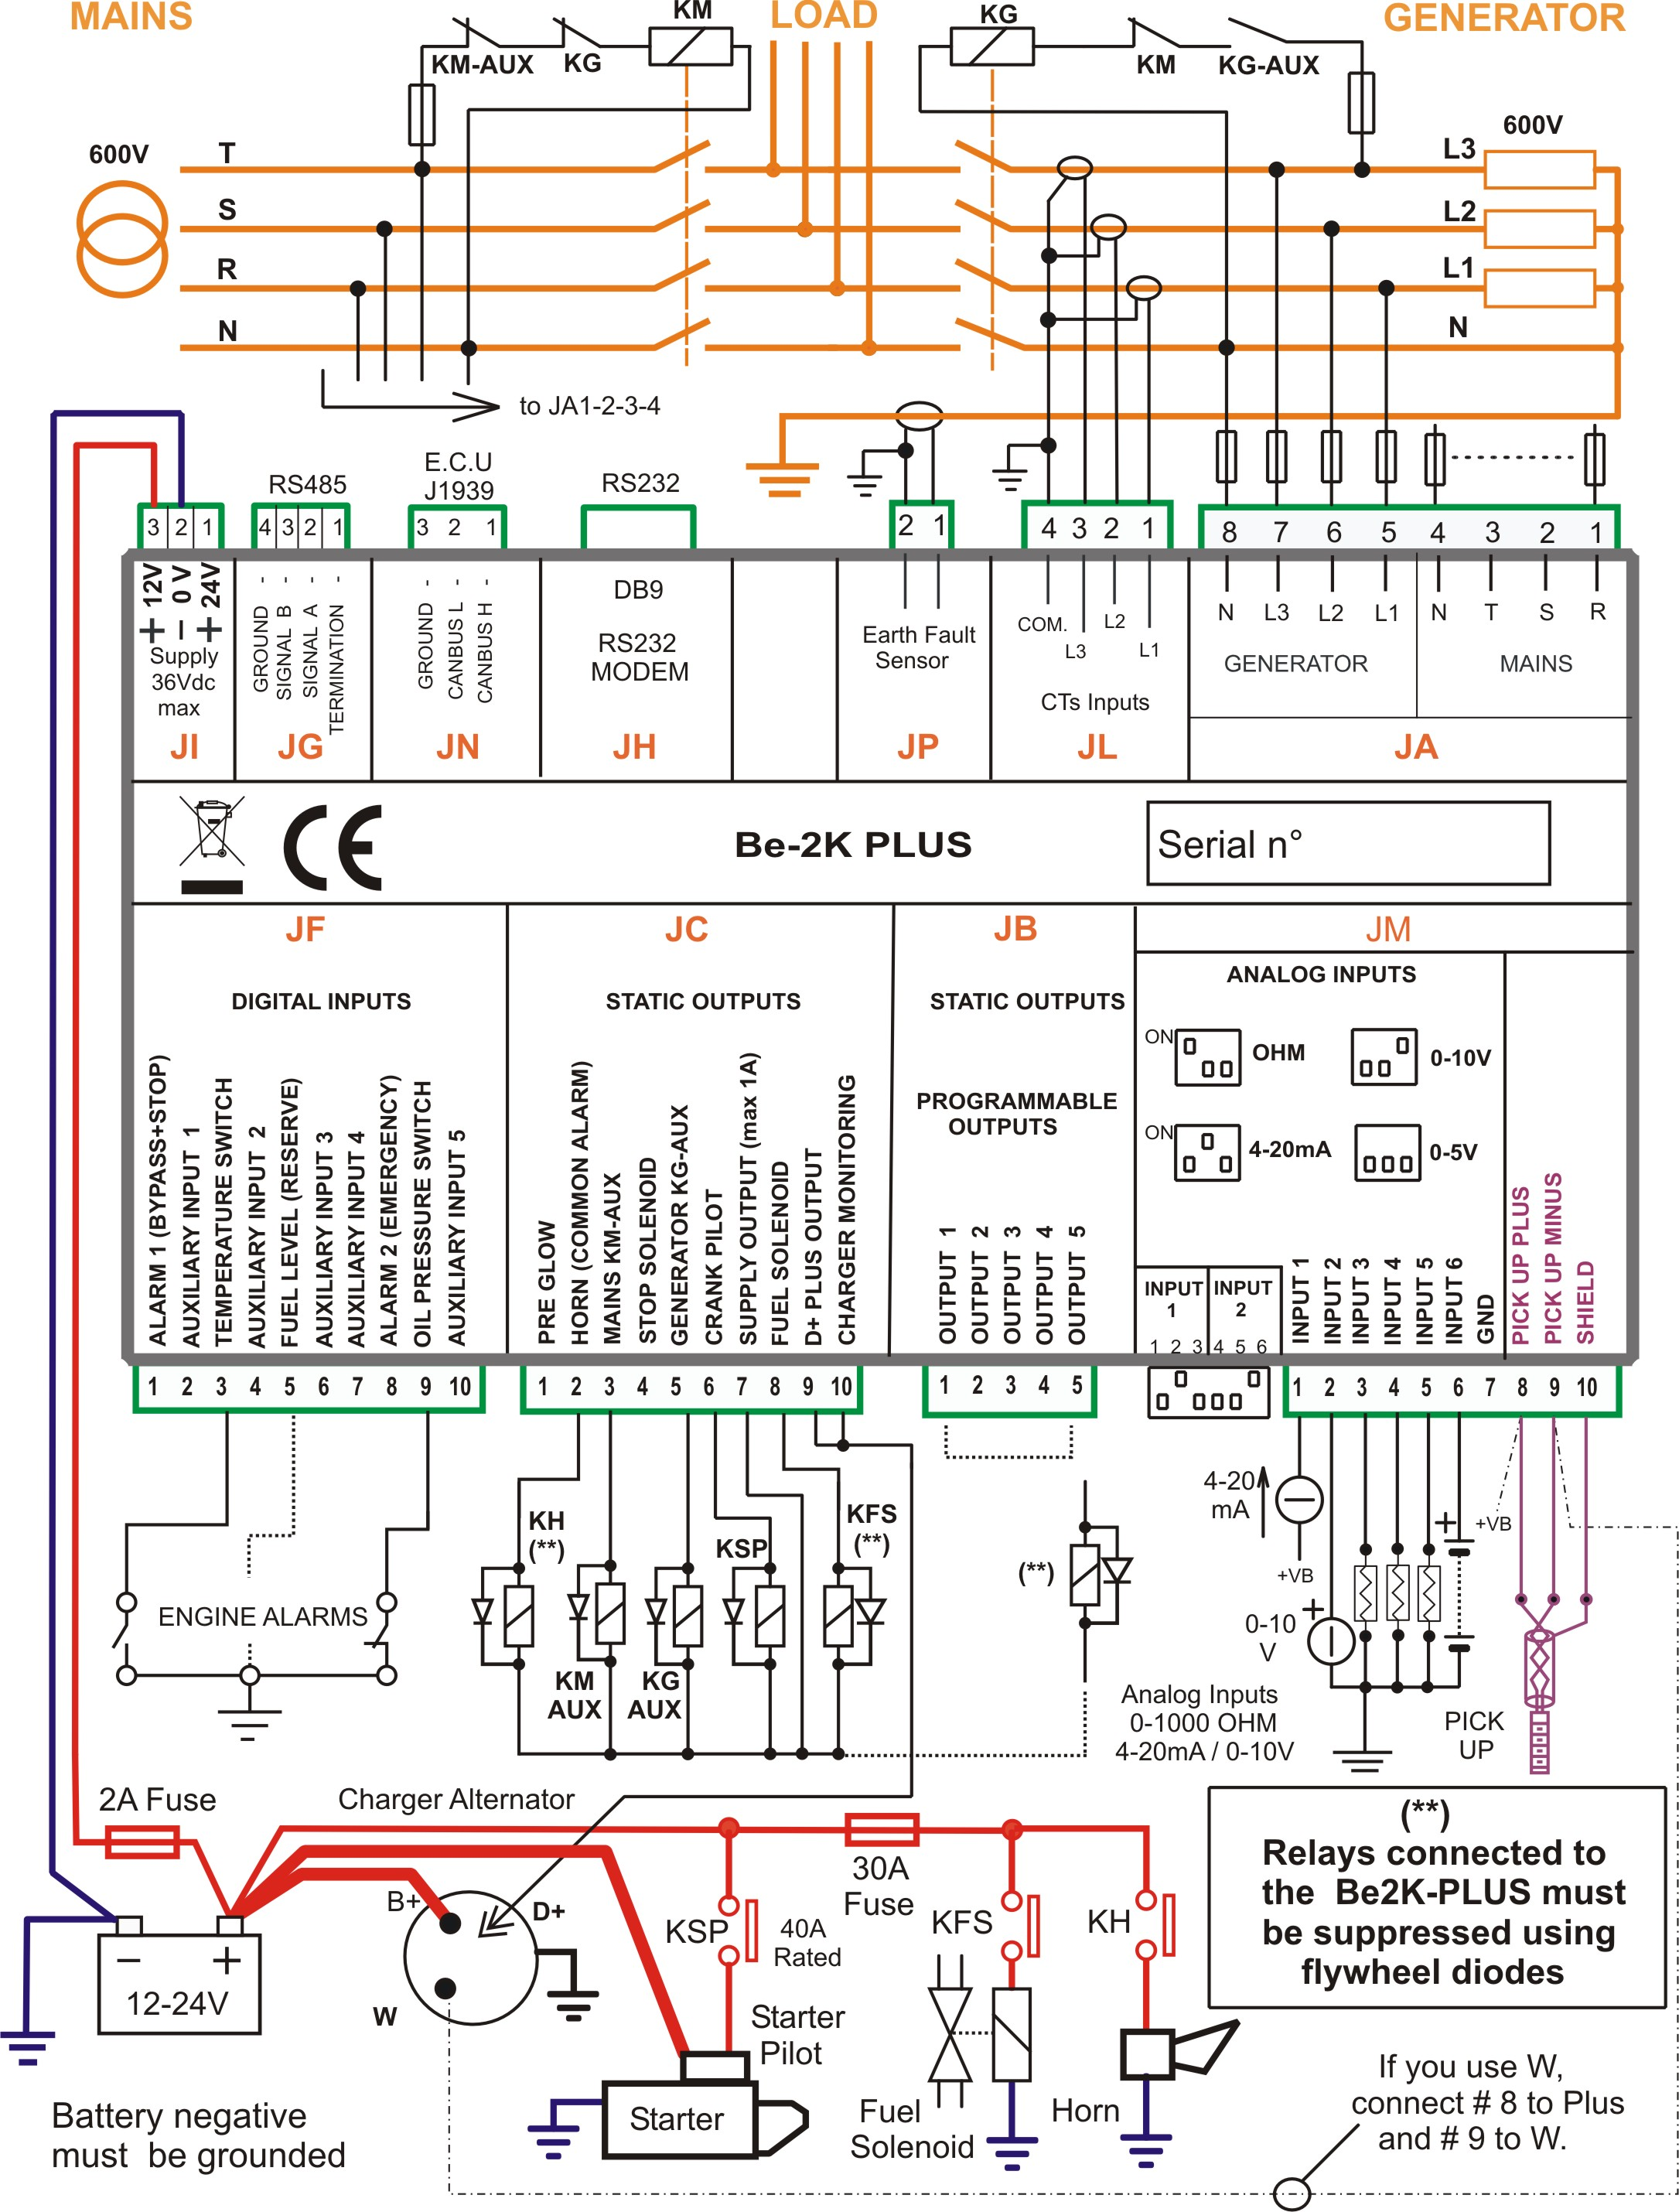 AMF panel control wiring amf panel control wiring genset controller generator control panel wiring diagram at gsmportal.co